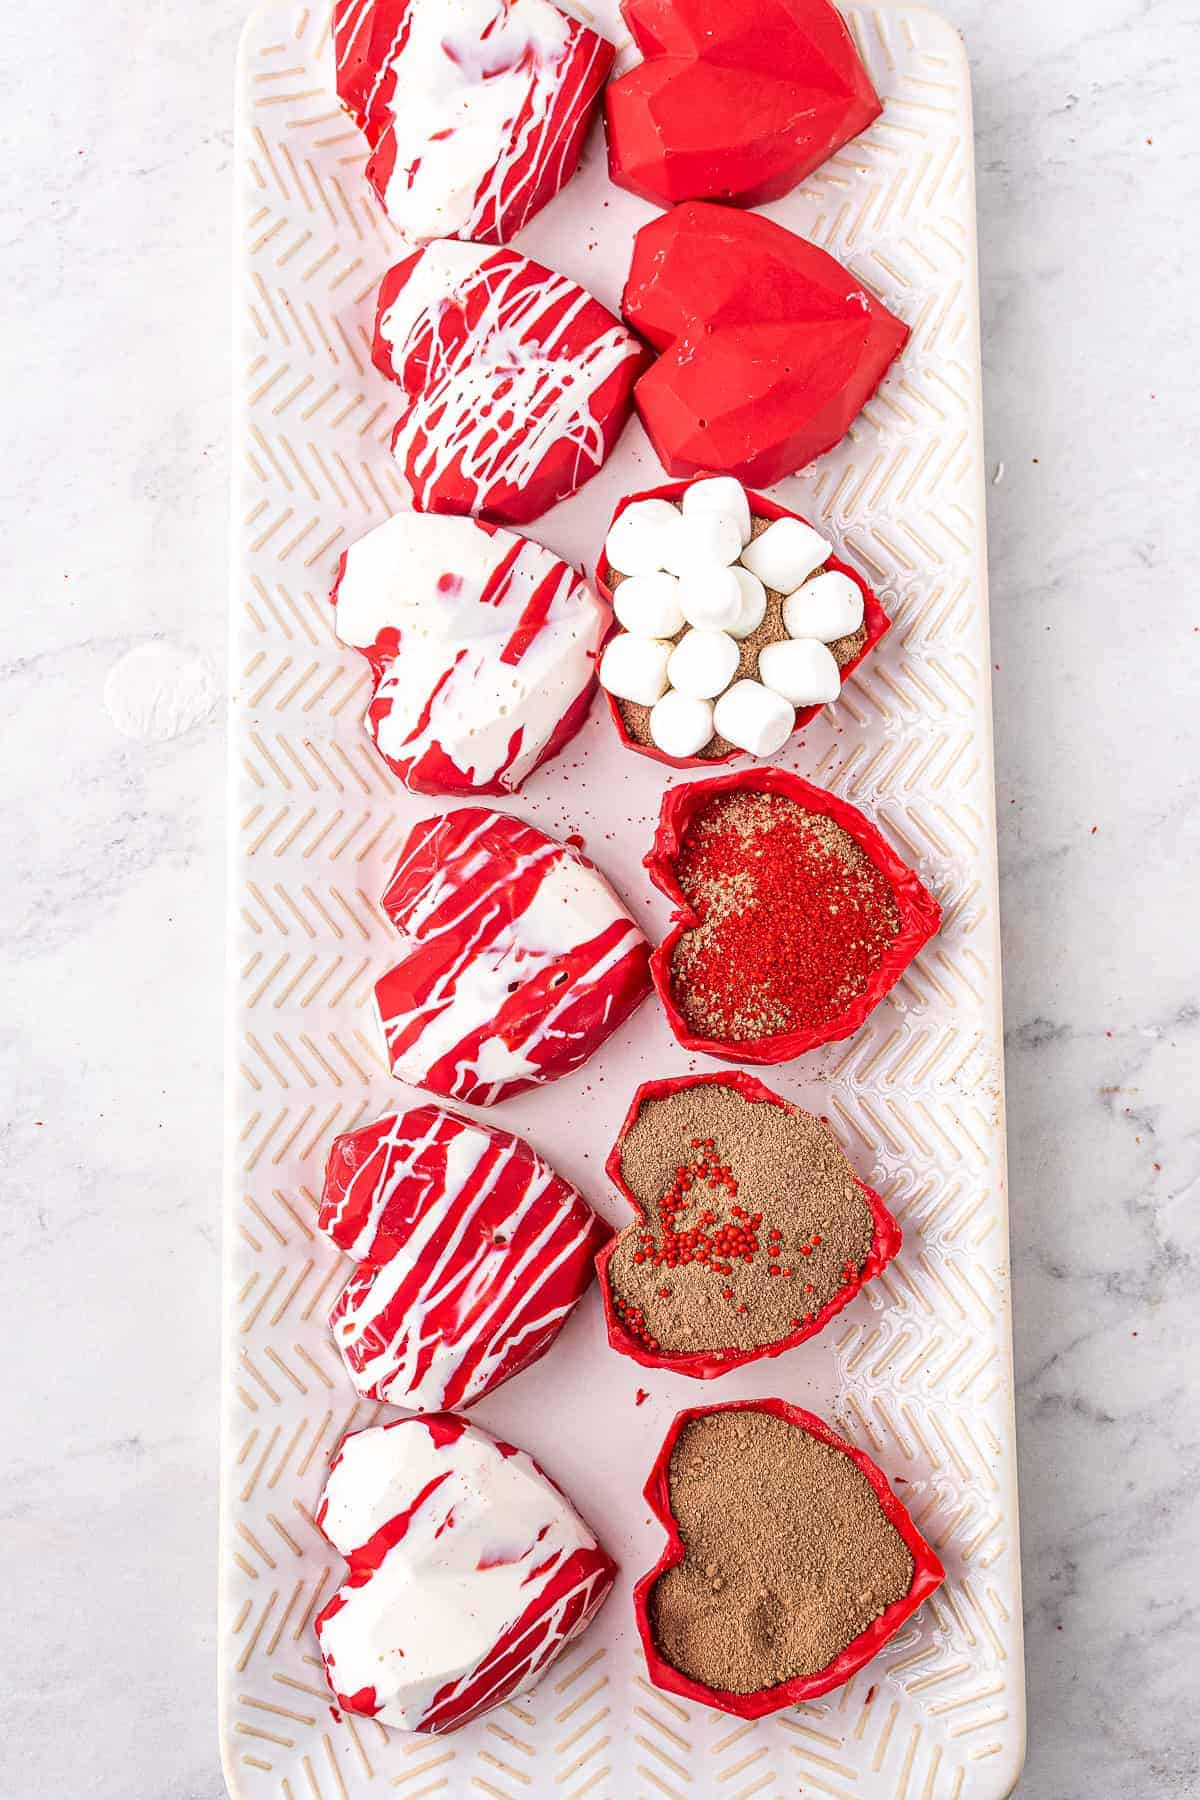 Heart Hot Chocolate Bombs halves with hot cocoa mix and mini marshmallows in them